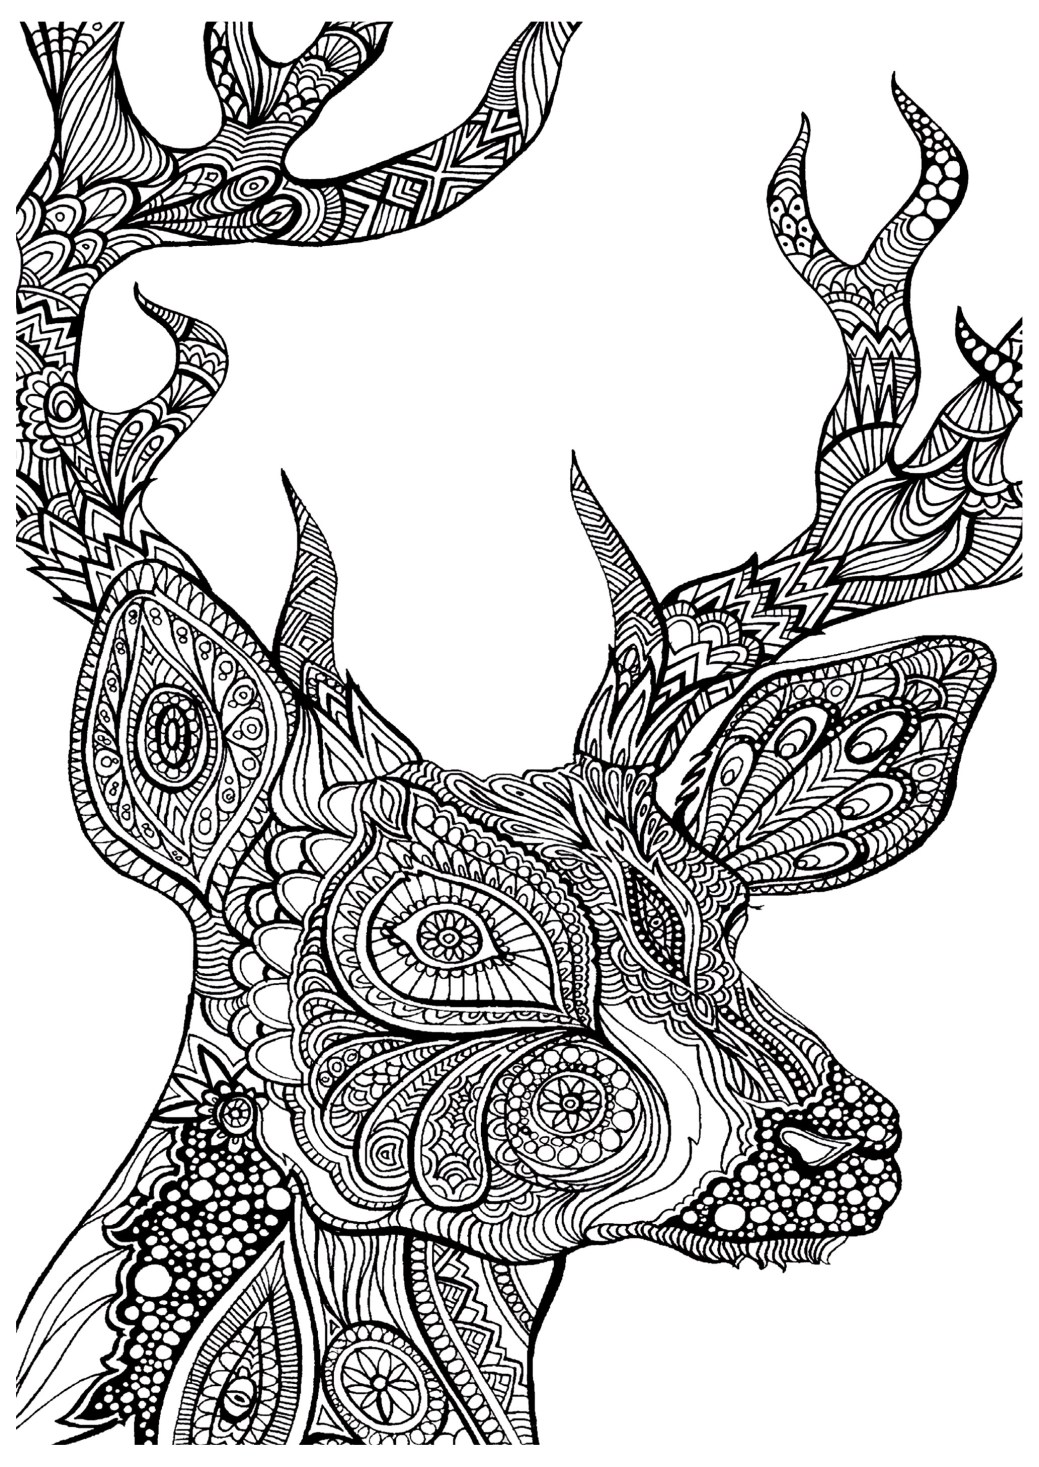 free adult coloring pages: 35 gorgeous printable coloring pages to